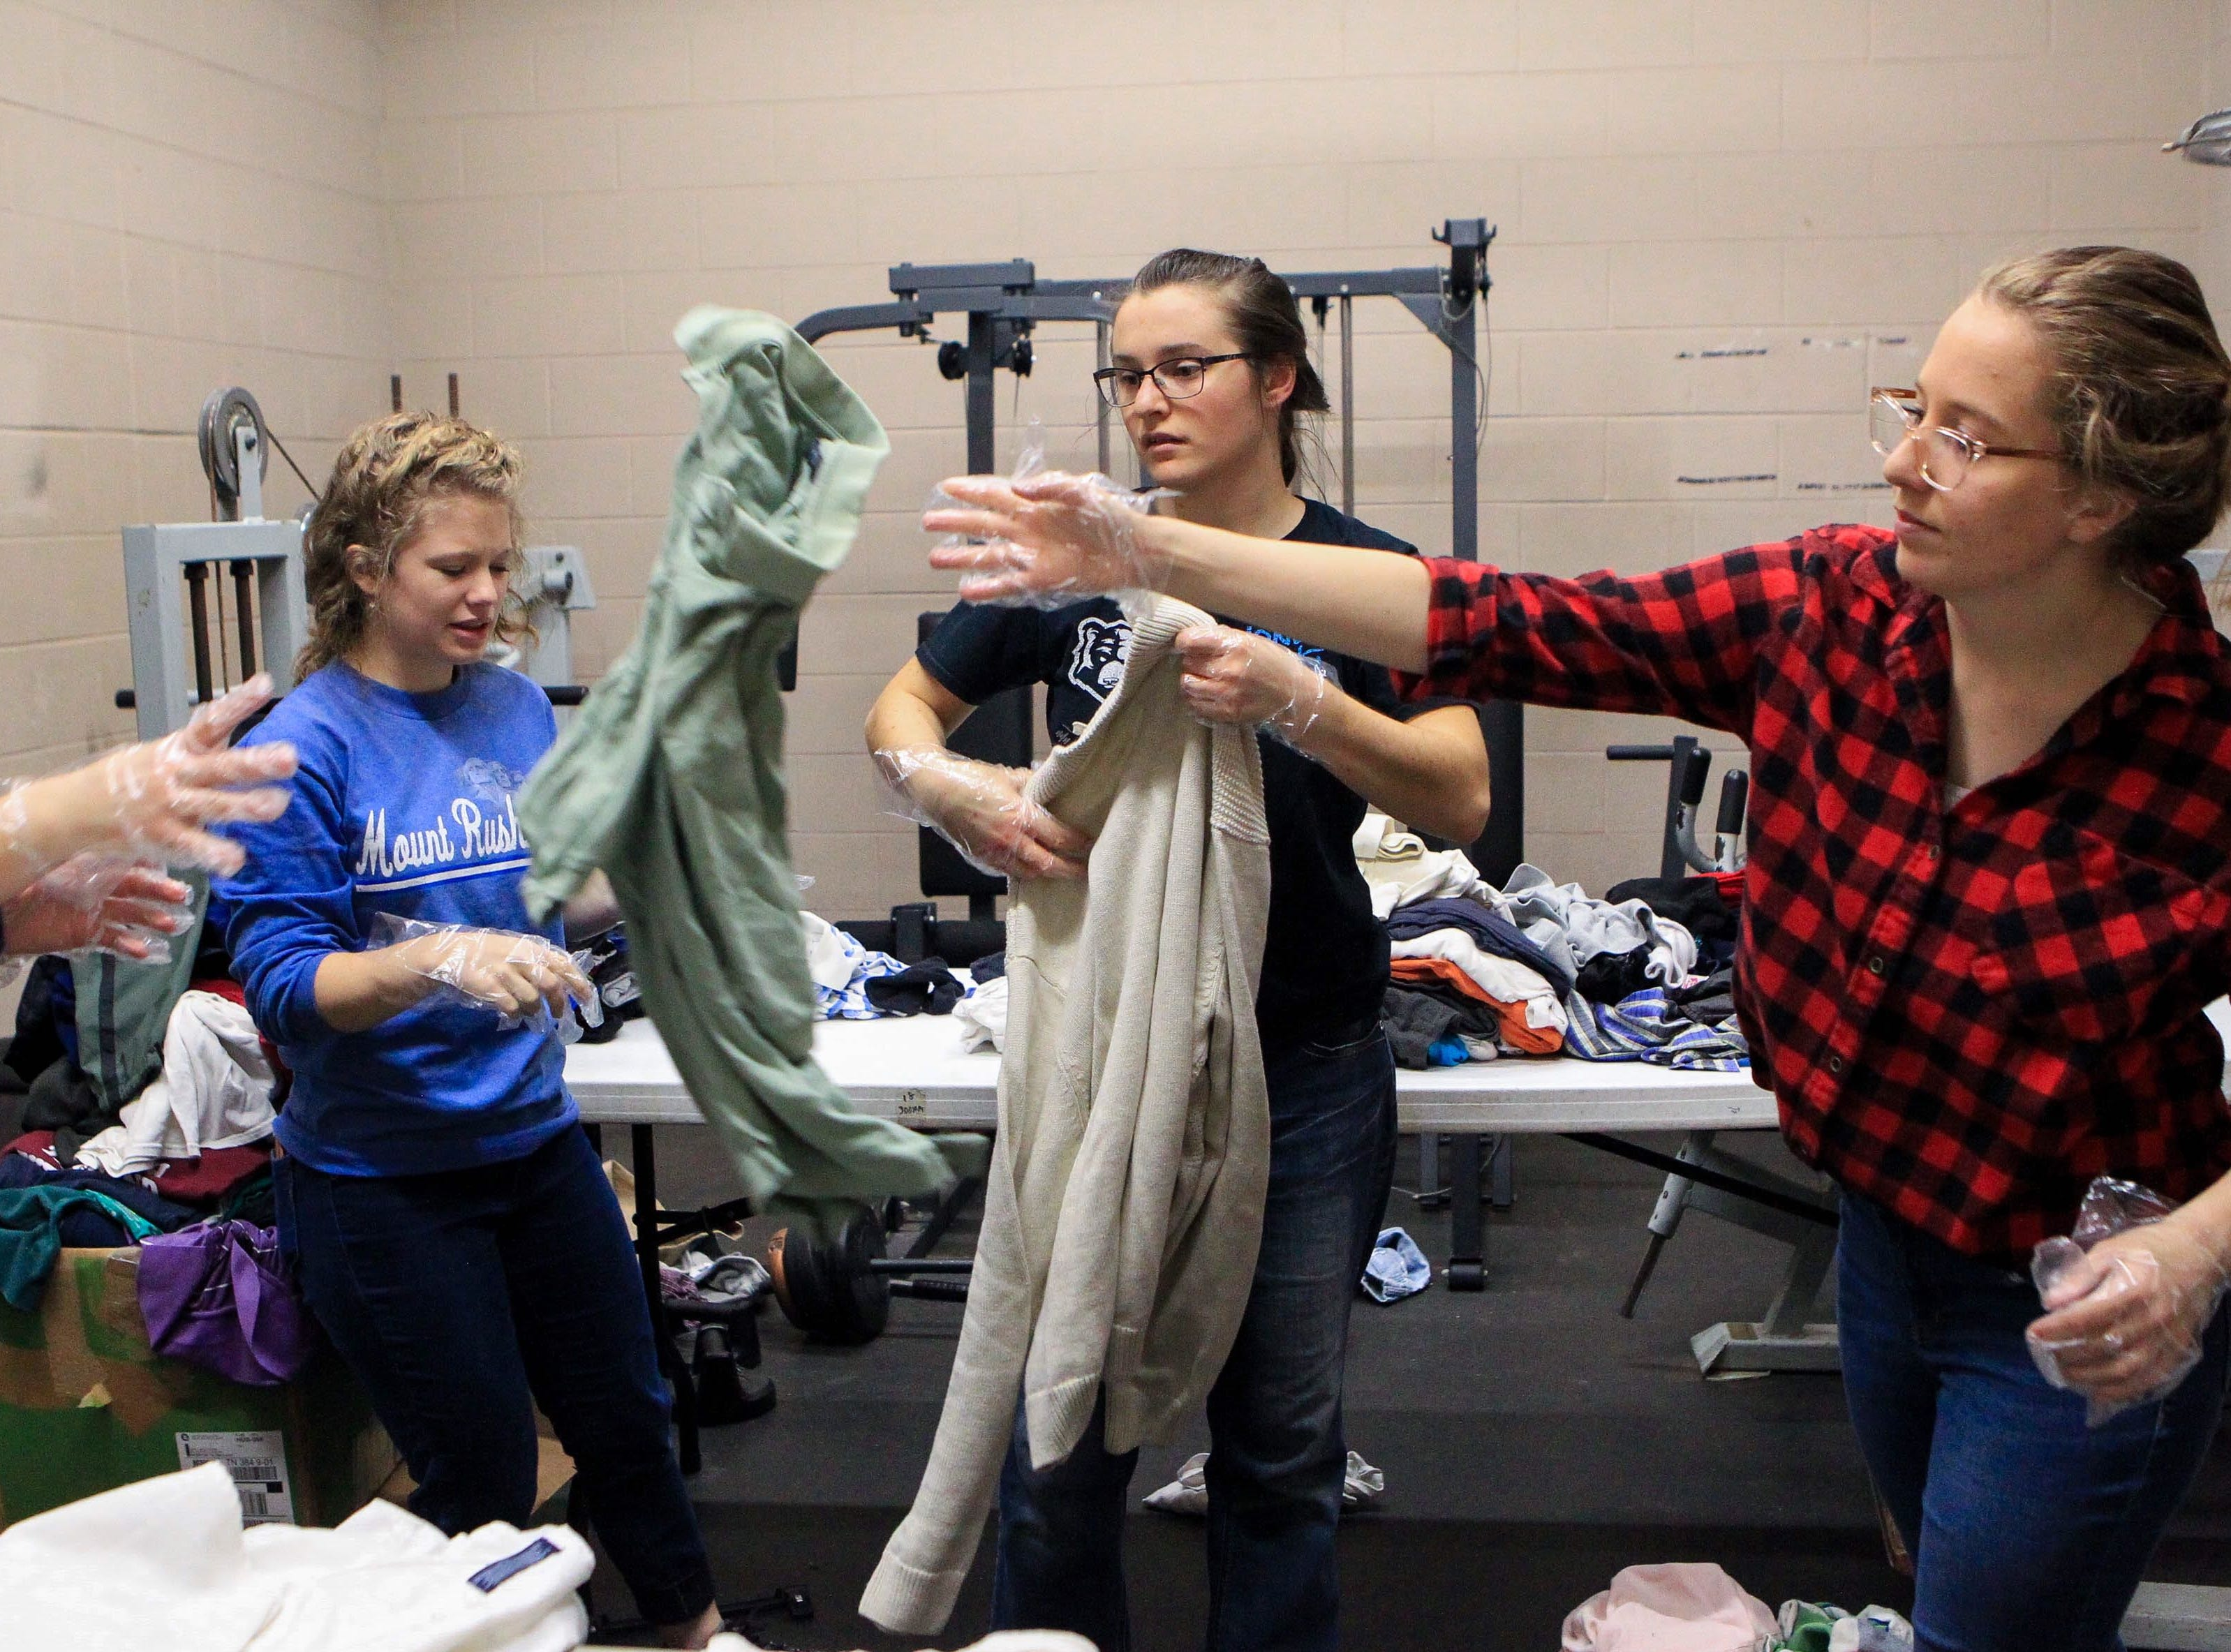 Sophomore Karen Mee tosses a shirt she just sorted as Suzanna Millington, a junior, and Taylor Holland, a sophomore, continue to sort at Miracle HillÕs Greenville Rescue Mission on Martin Luther King, Jr. Day Monday, Jan. 21, 2019.